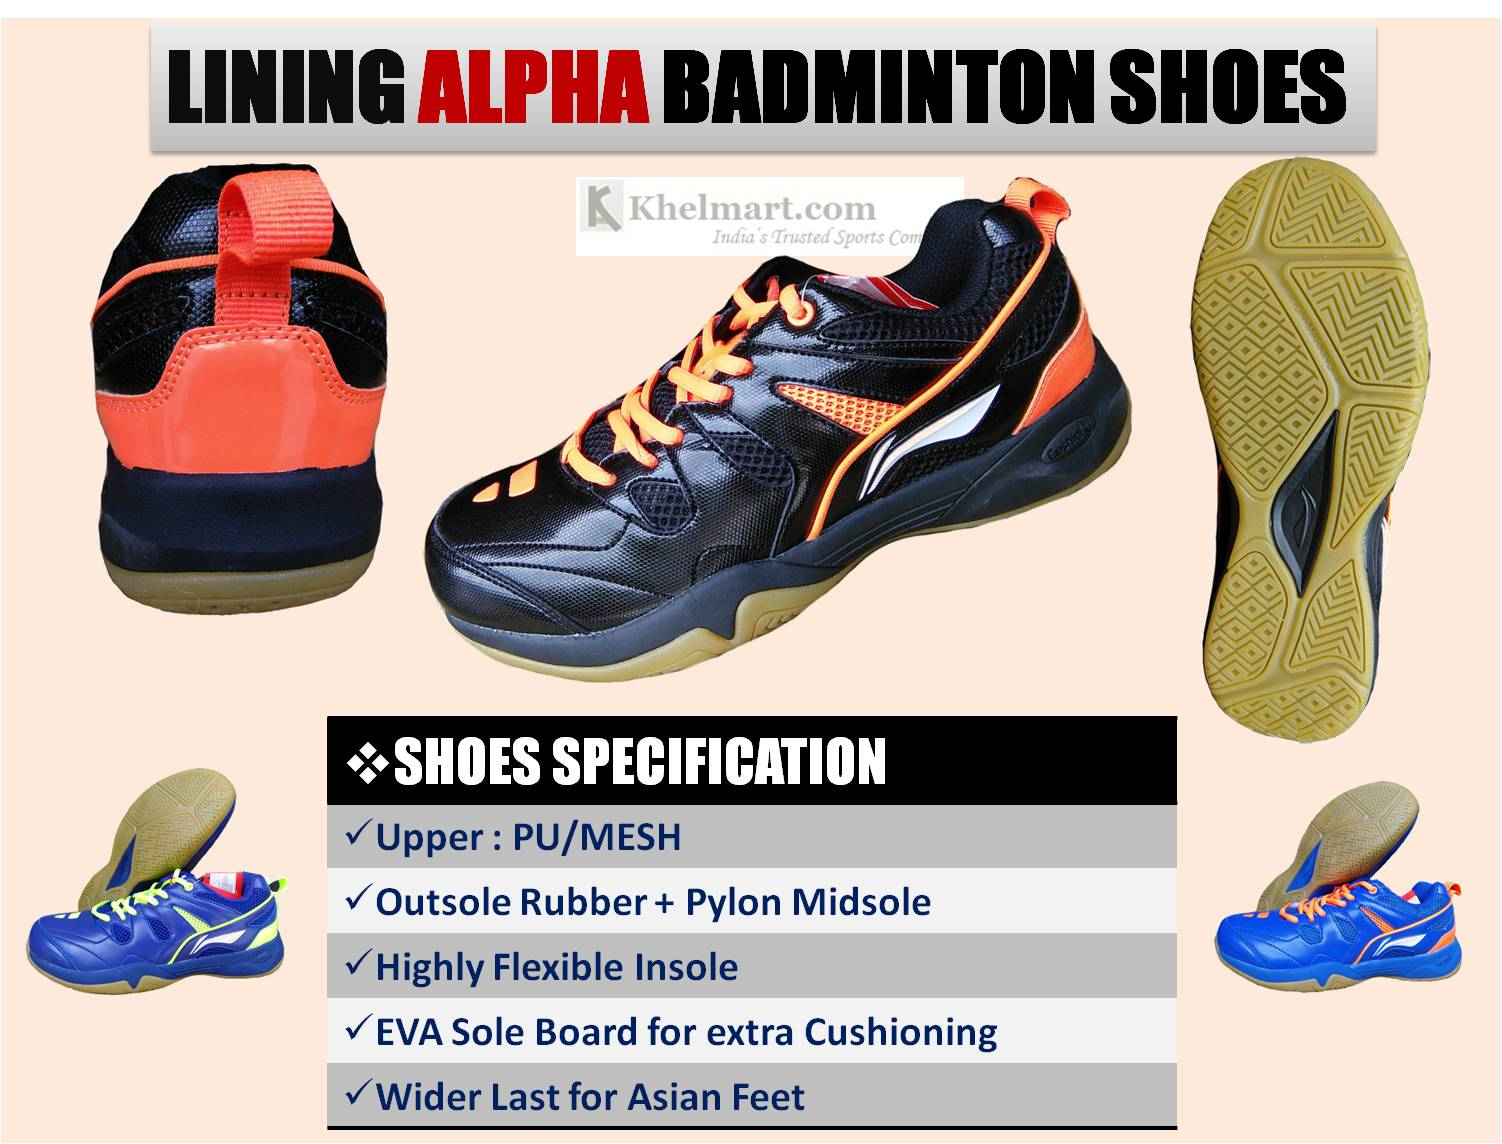 LINING_ALPHA_BADMINTON_SHOES.jpg